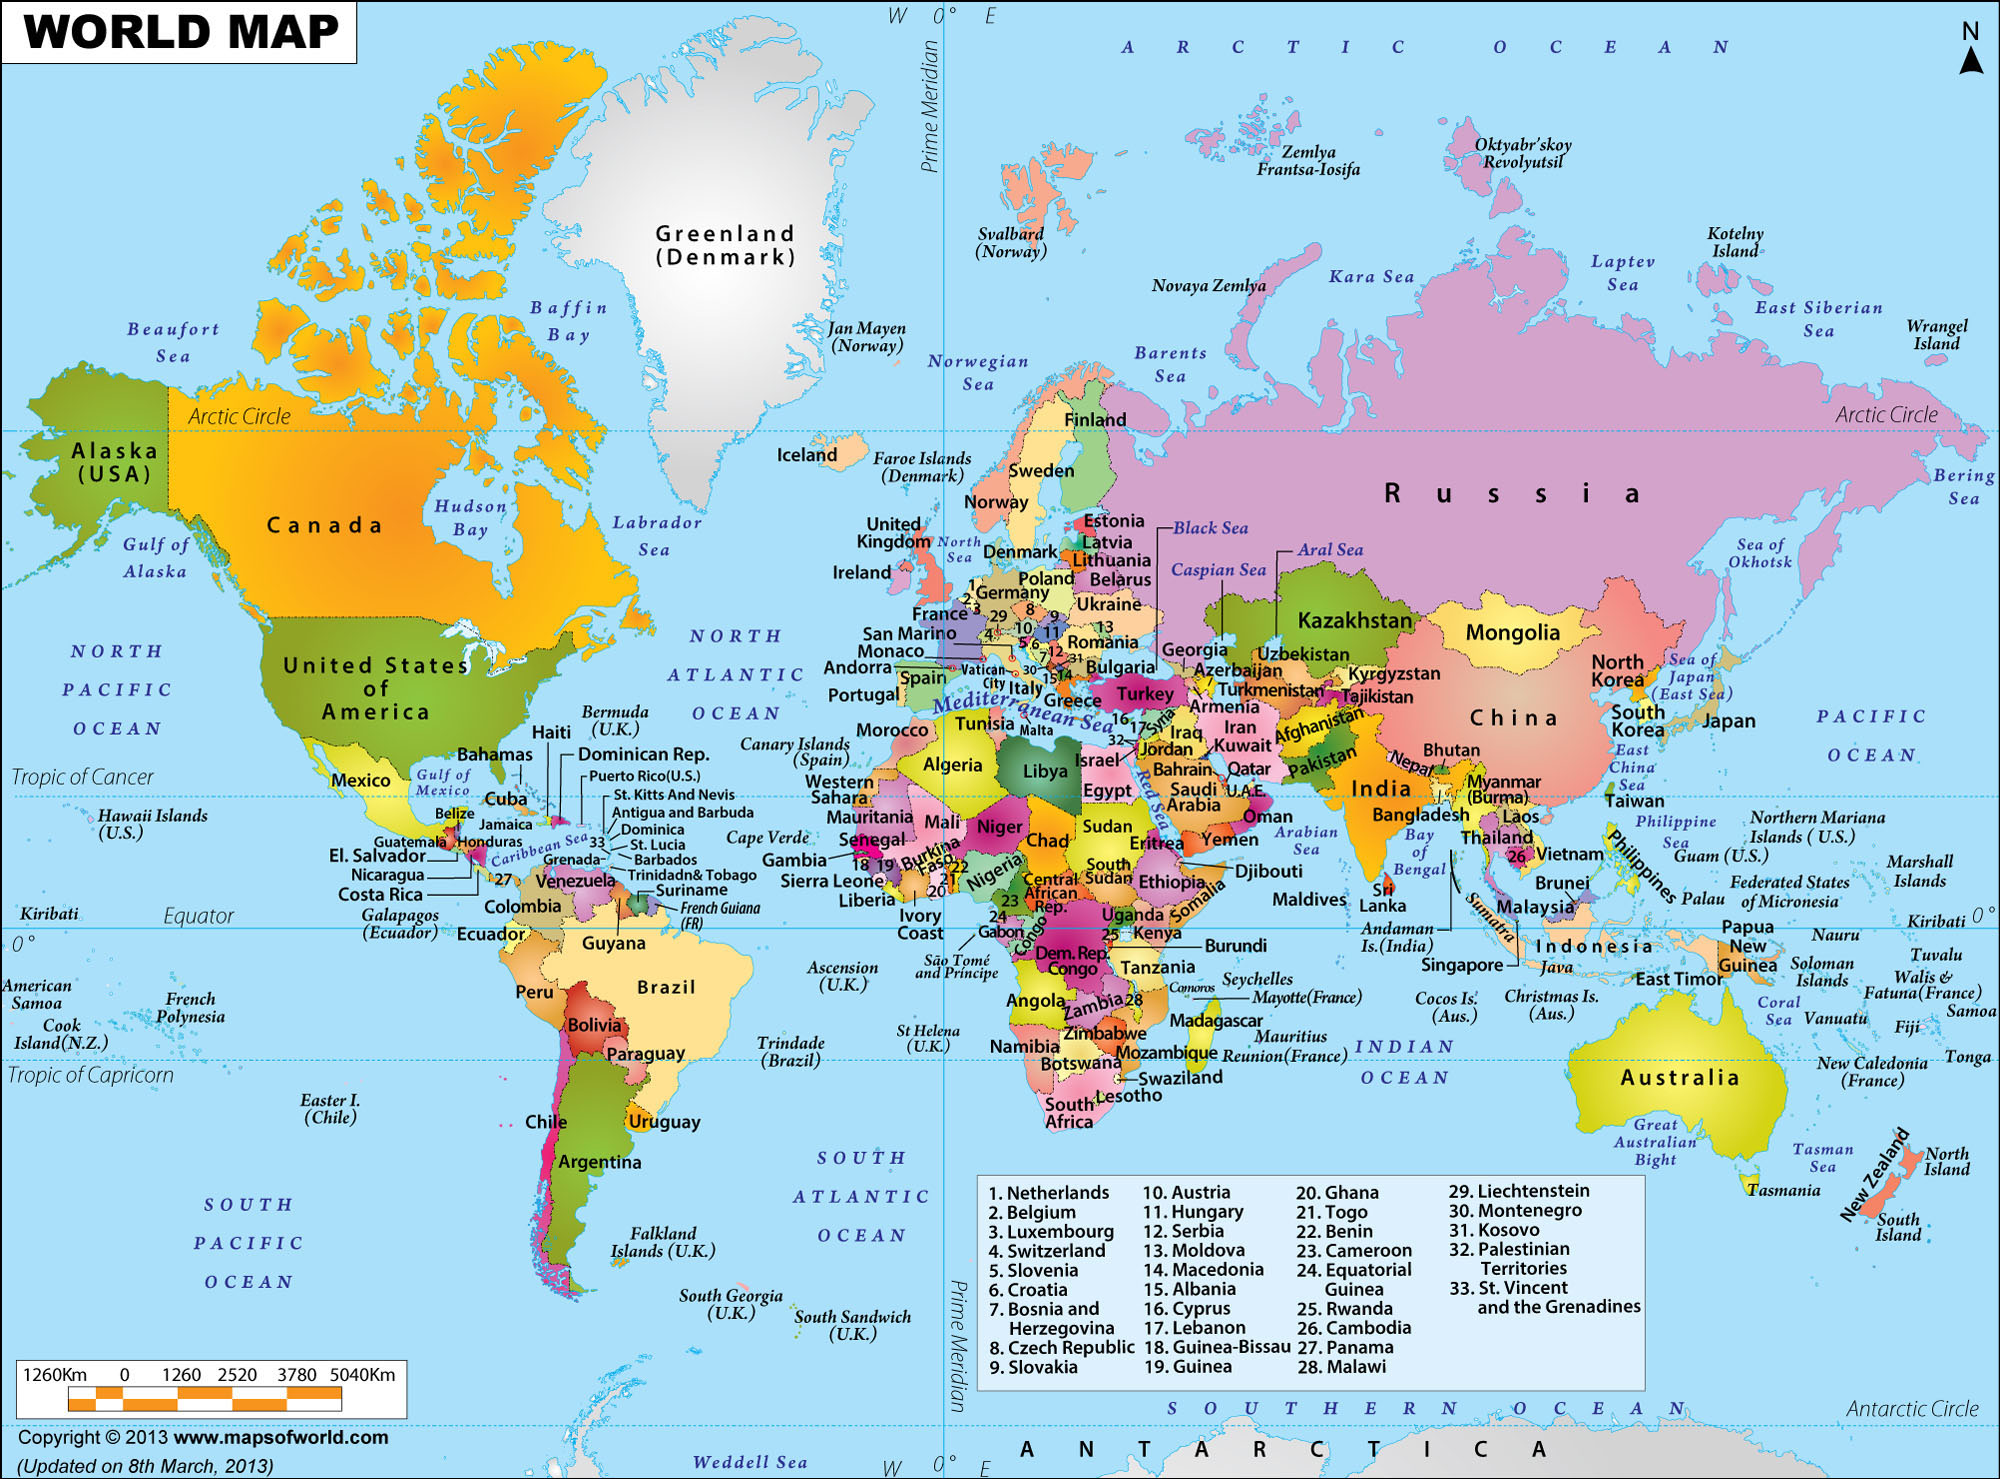 World Map, nominal case